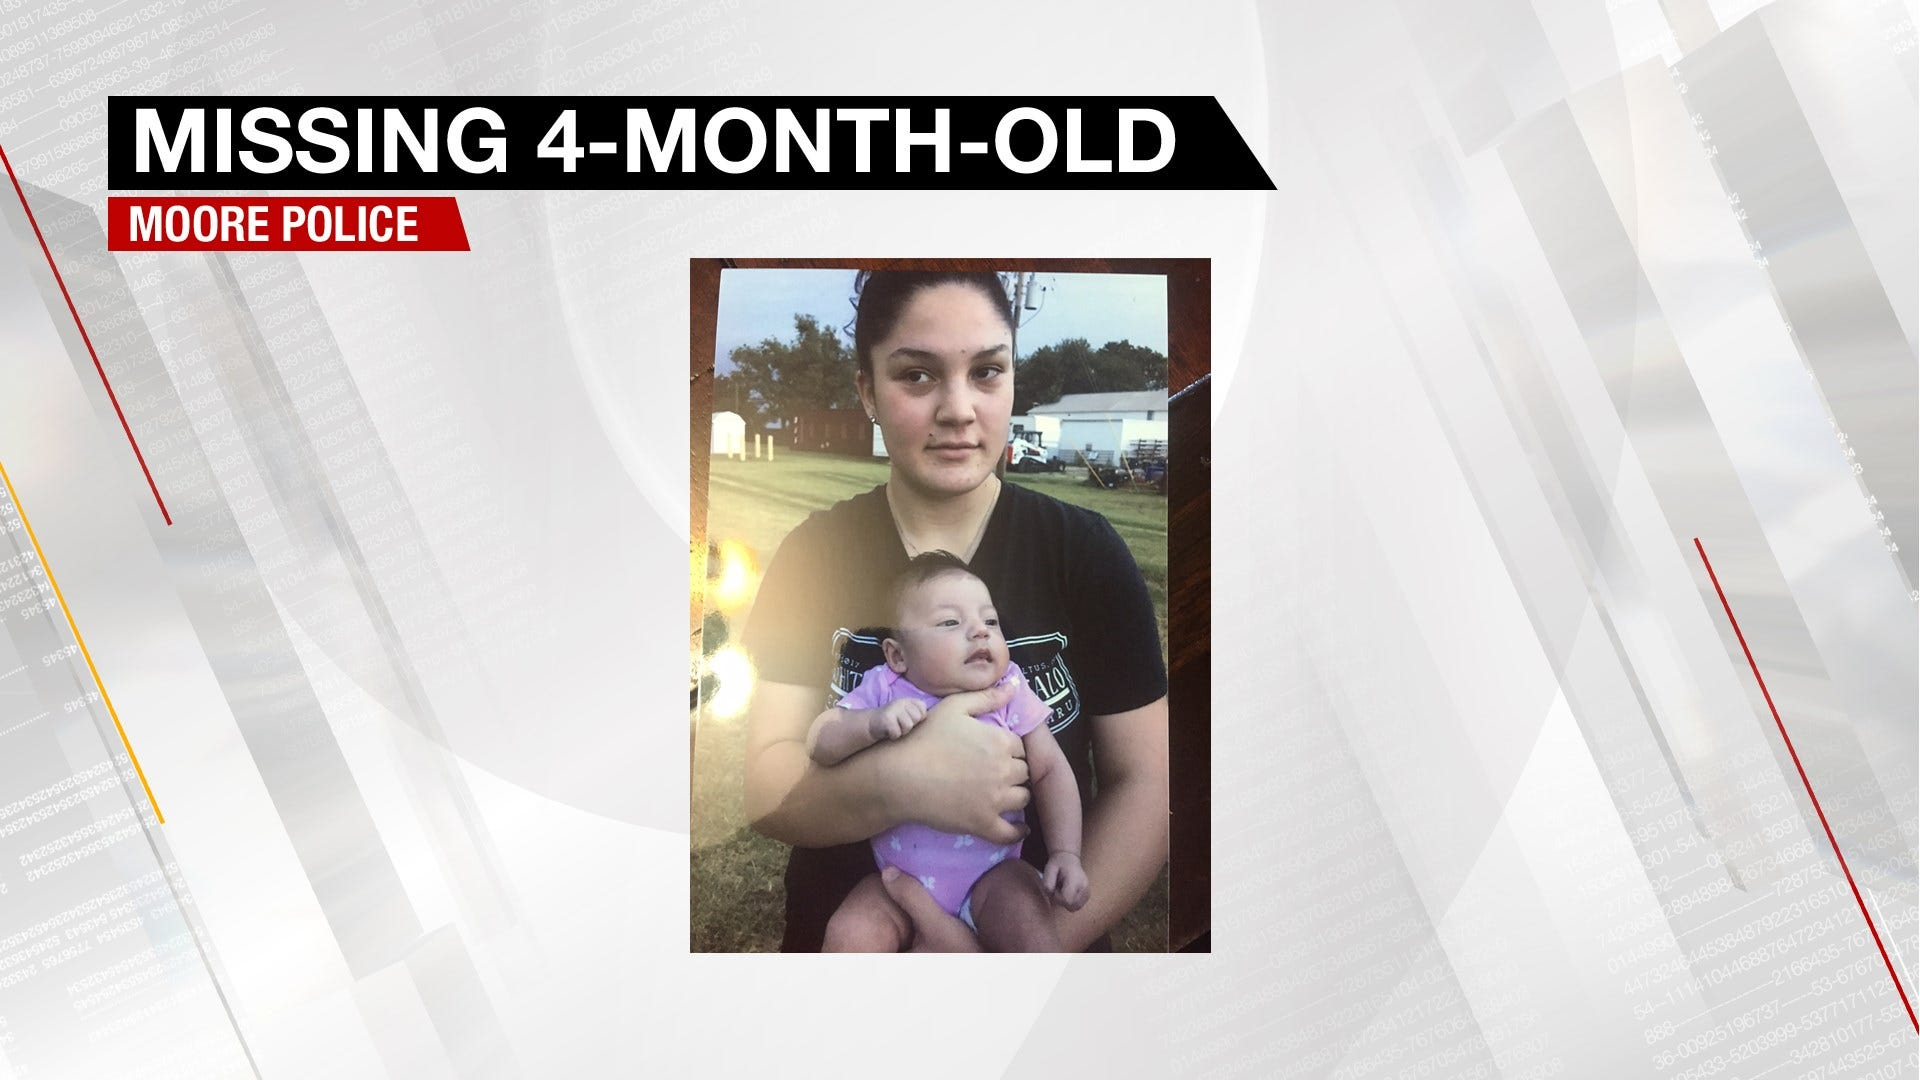 Missing 4-Month-Old Reported By Moore Police